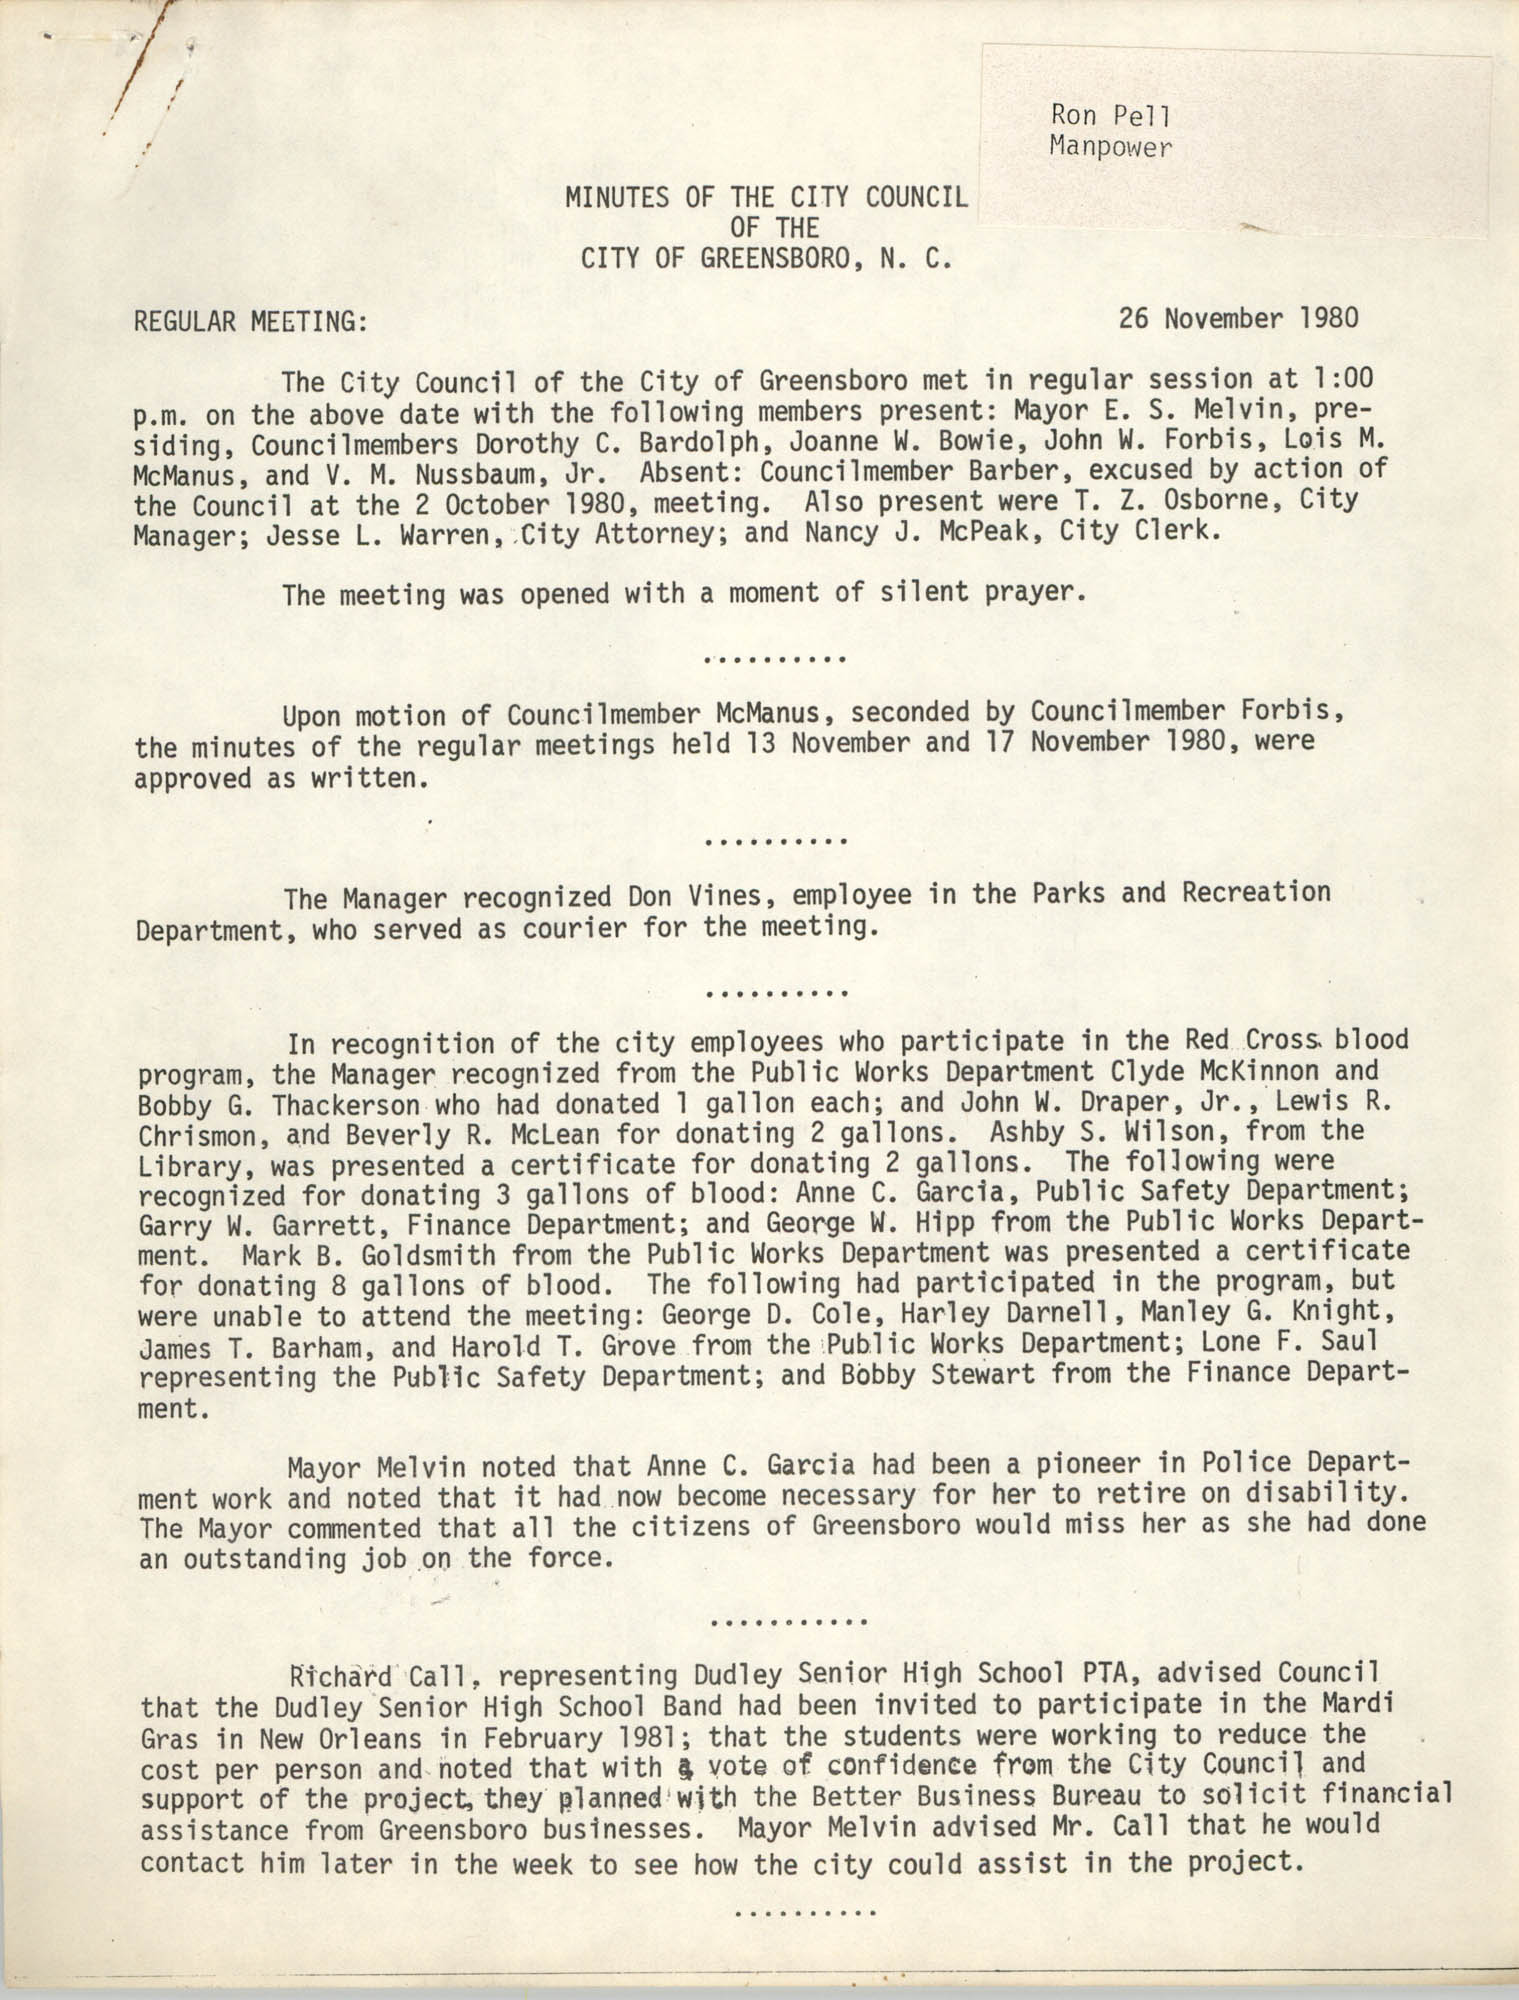 Minutes of the City Council of the City of Greensboro, N.C., November 26, 1980, Page 1